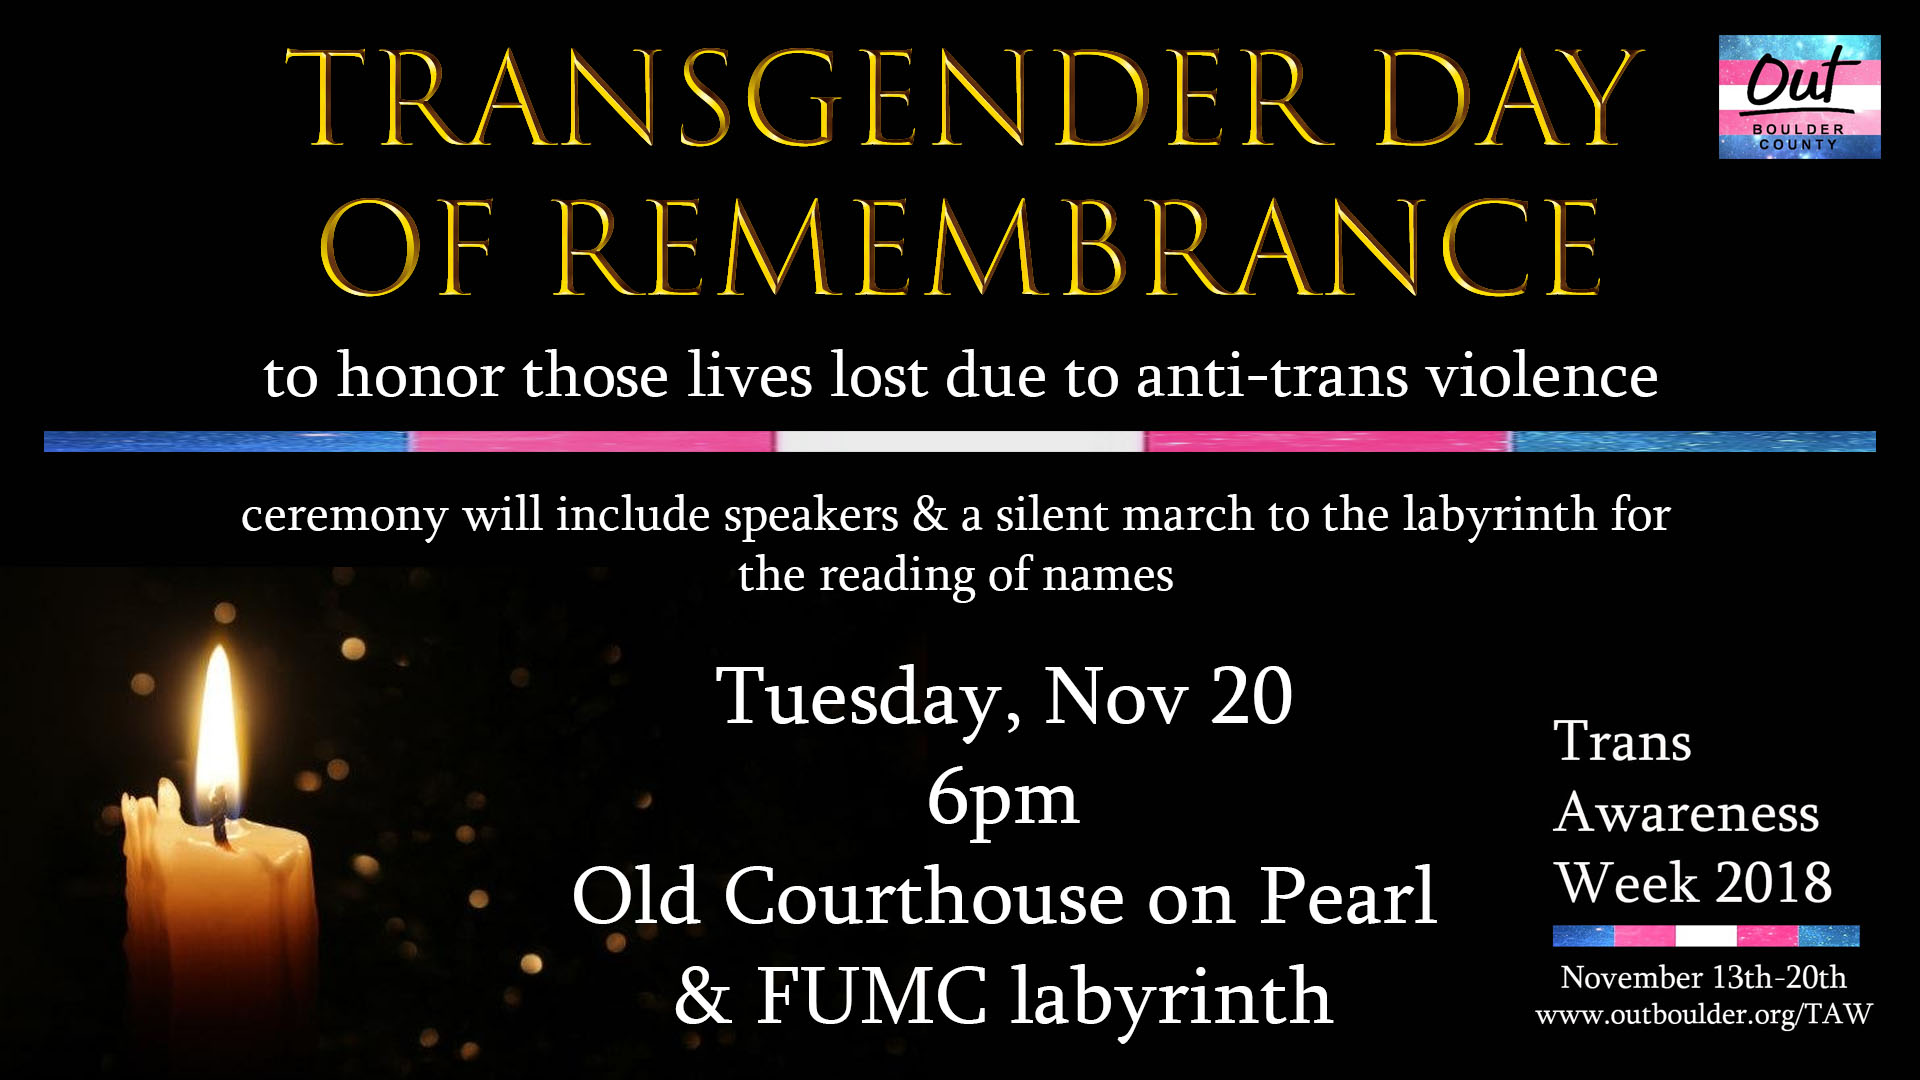 Transgender Day of Remembrance is an annual observance on November 20 that honors those lives lost due to anti-transgender violence. We will meet at the Courthouse on Pearl Street in Boulder to begin the ceremony and hear from speakers. Then we will walk silently together to the First United Methodist Church labyrinth for the reading of names. Attendees will have time to walk the labyrinth after the names are read.   Facebook Event Info